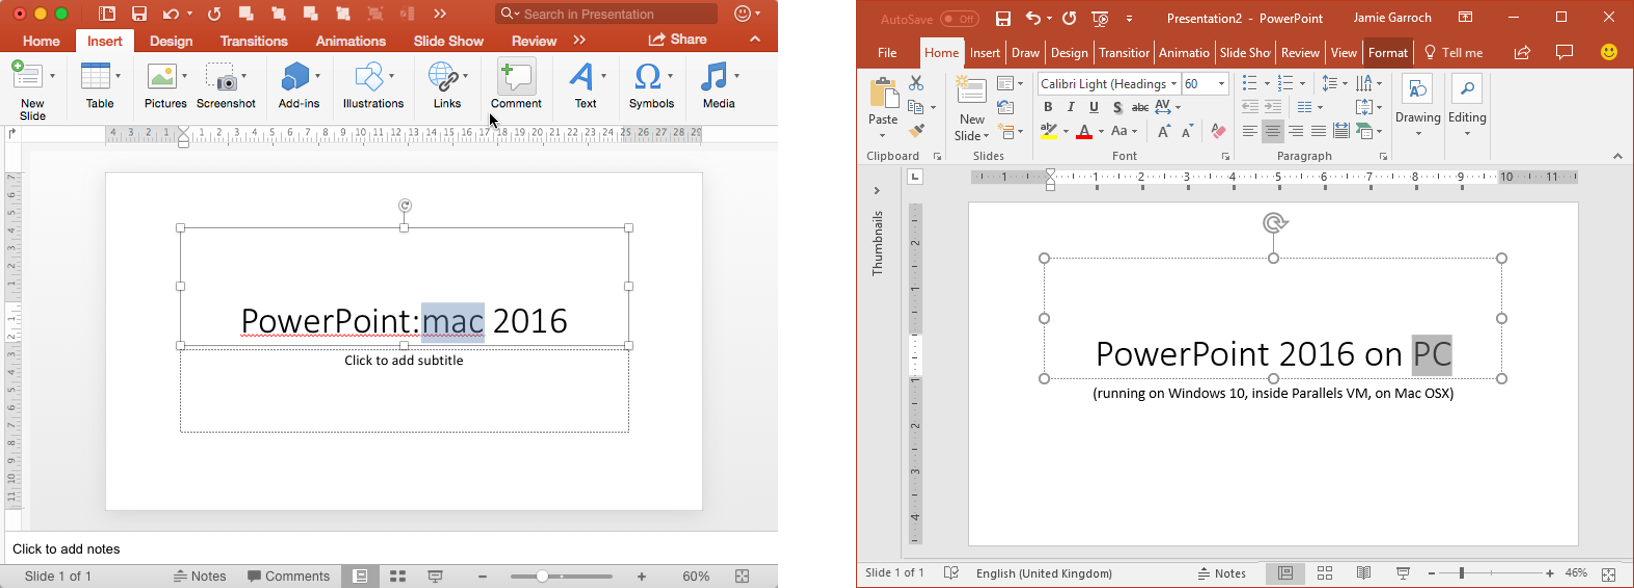 PowerPoint 2016 Mac versus PC